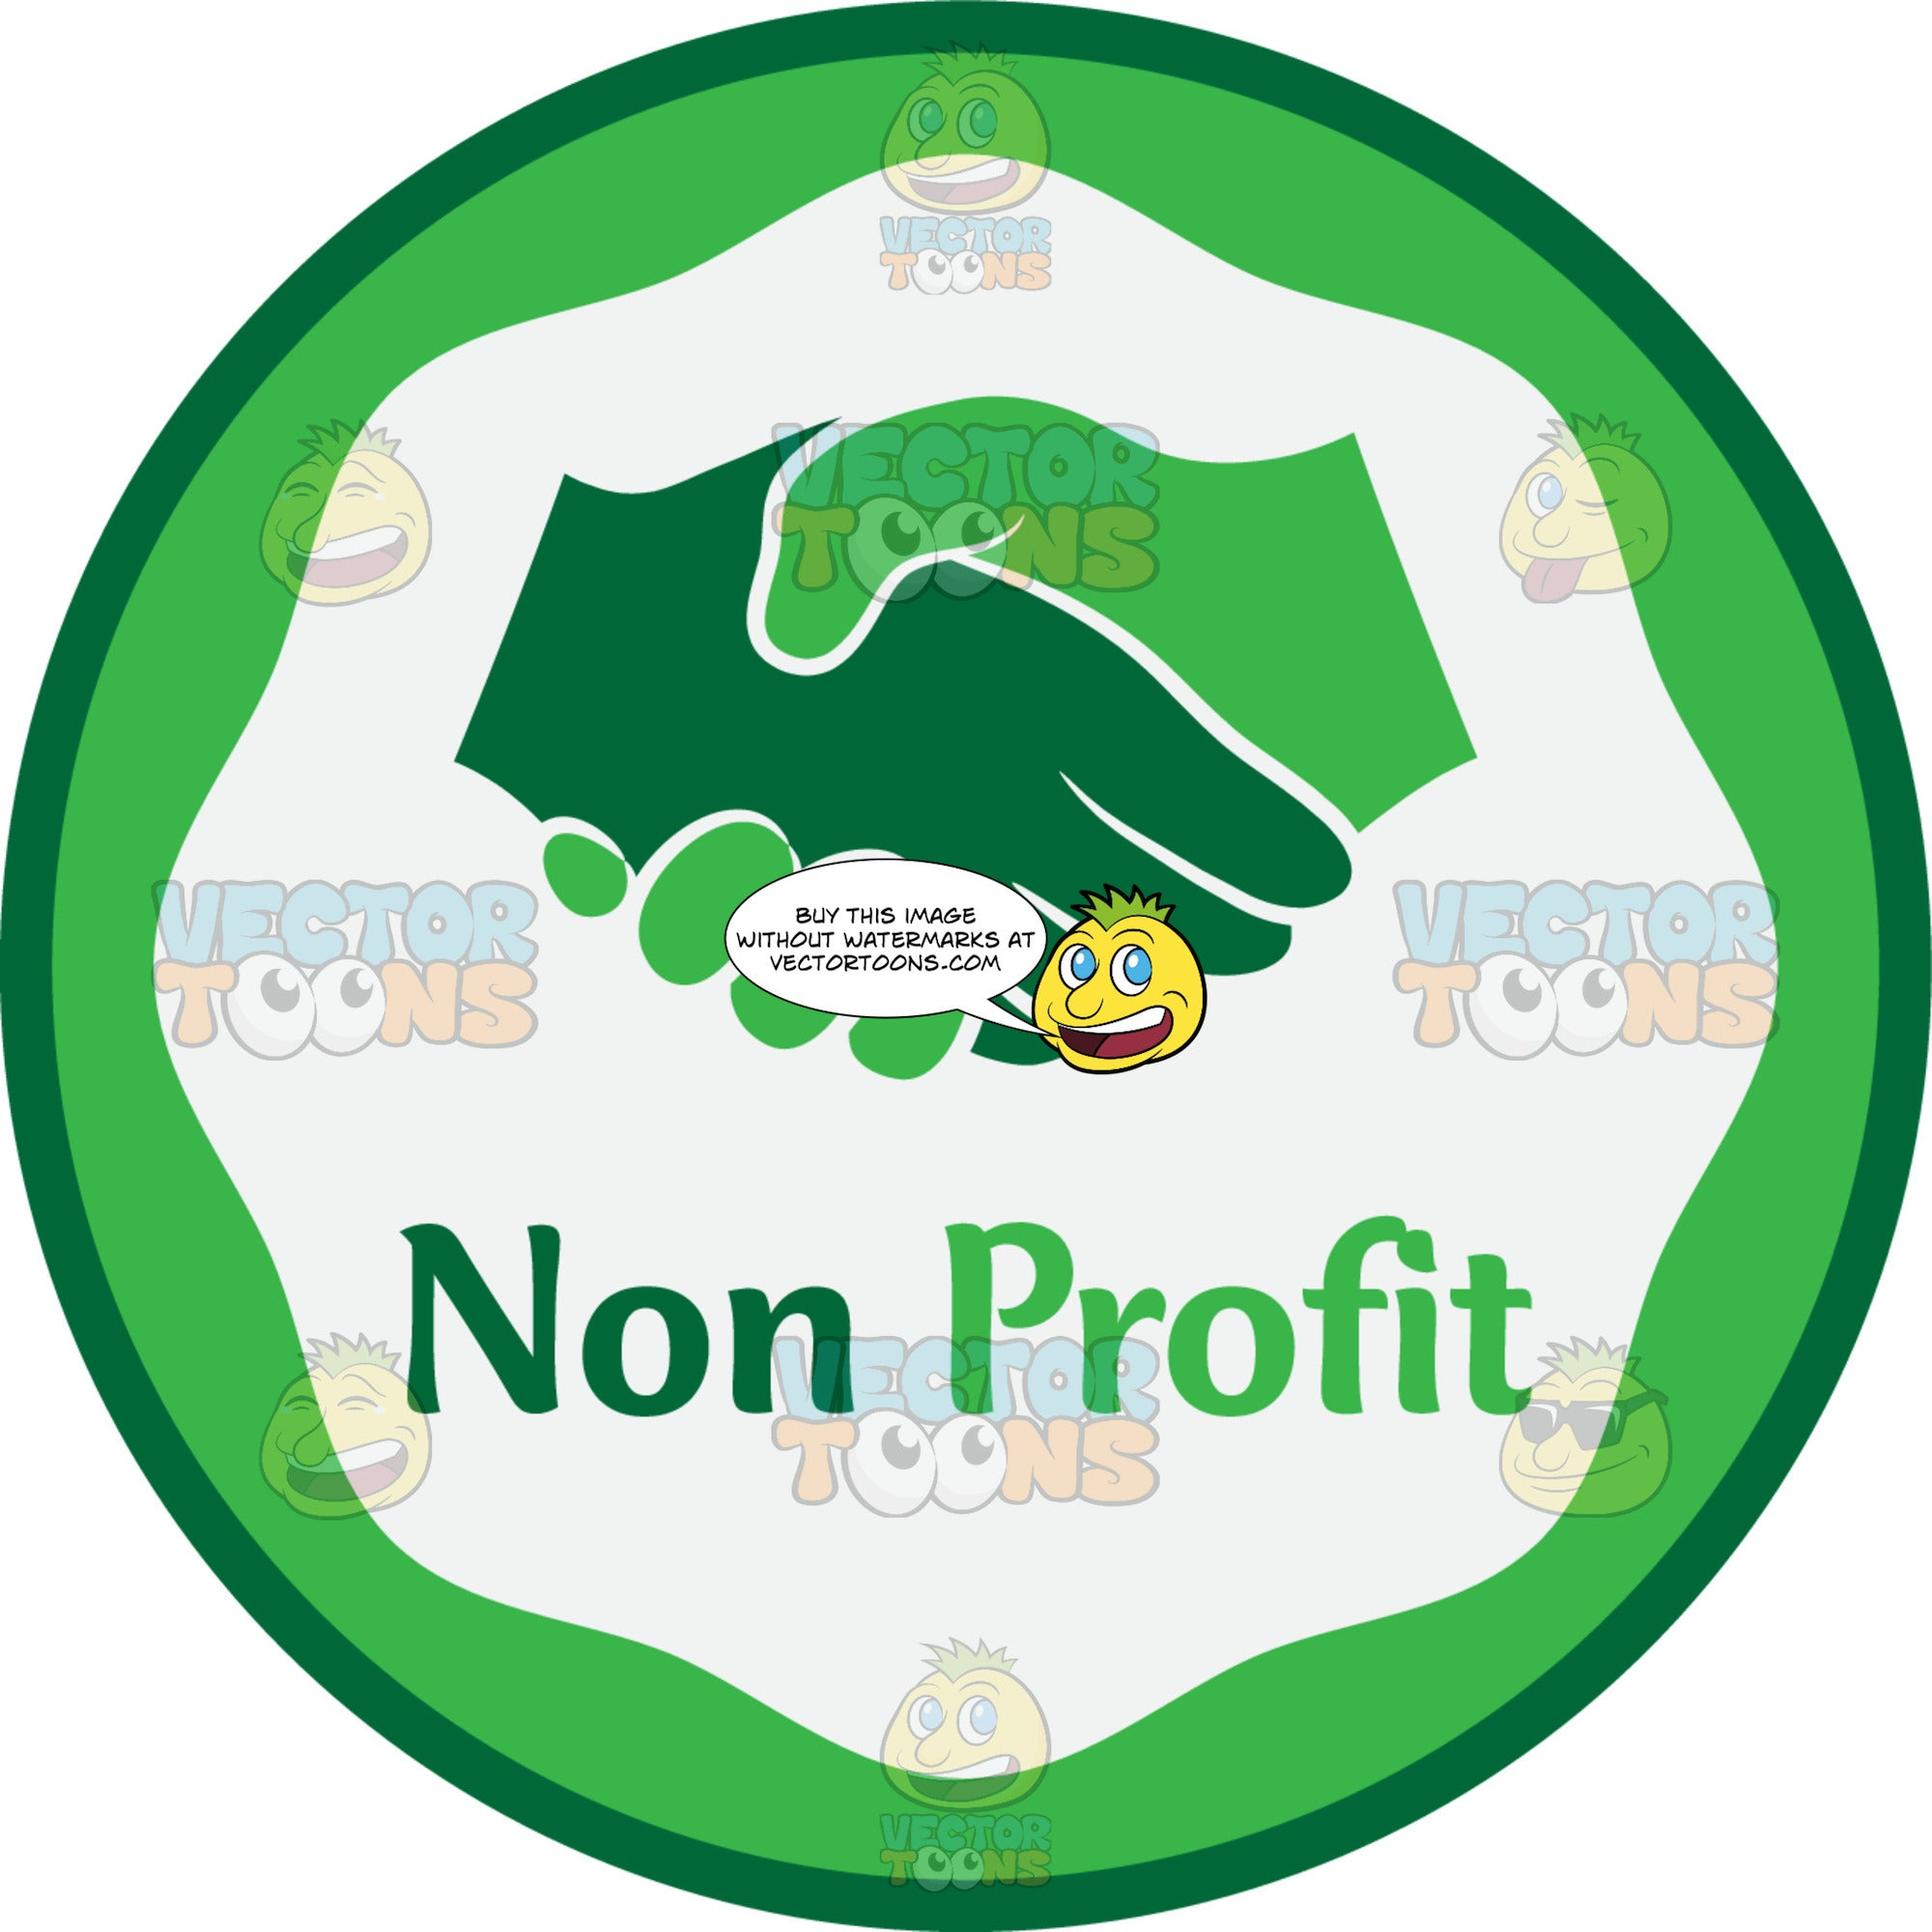 Non Profit Agreement Logo